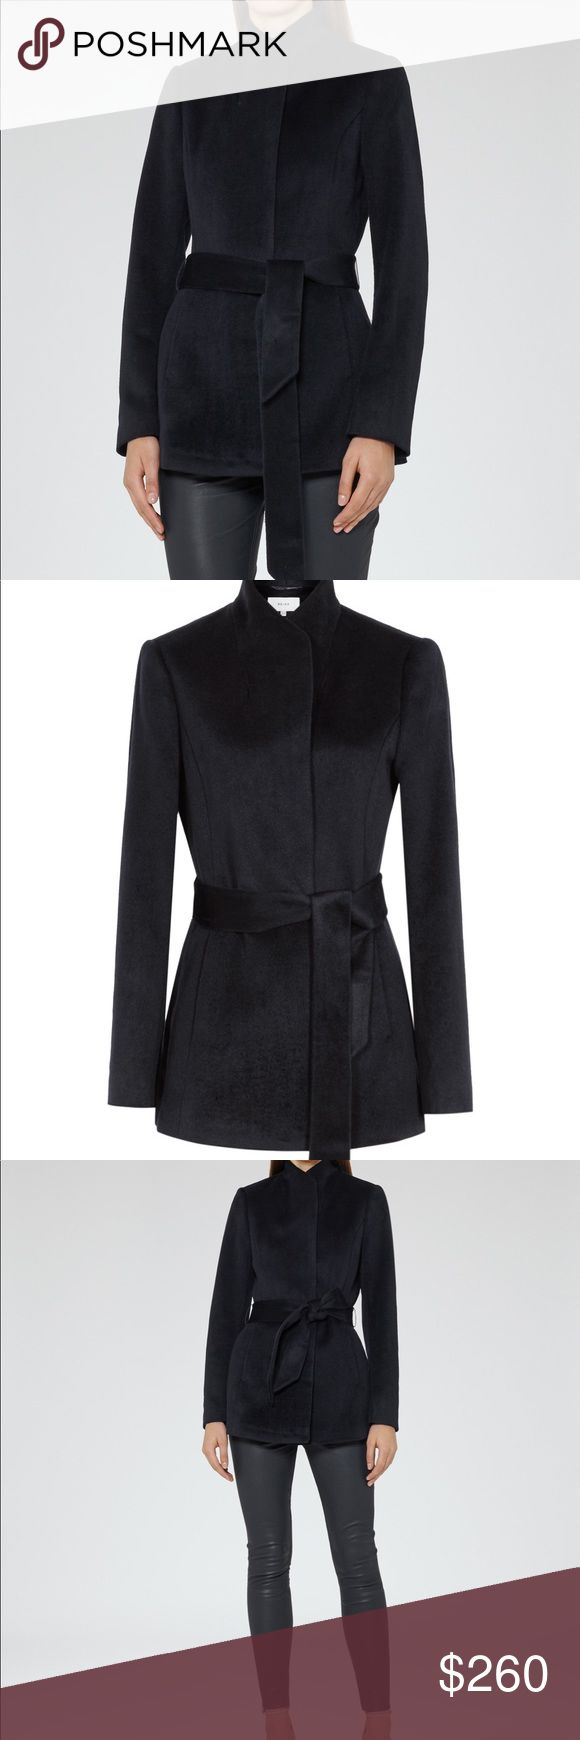 Brand new Reiss Reema belted coat jacket navy Reiss reema belted navy jacket coat. Brand new with tags, never worn. Size 6 US. Still available on the Reiss website for $340. Reiss Jackets & Coats